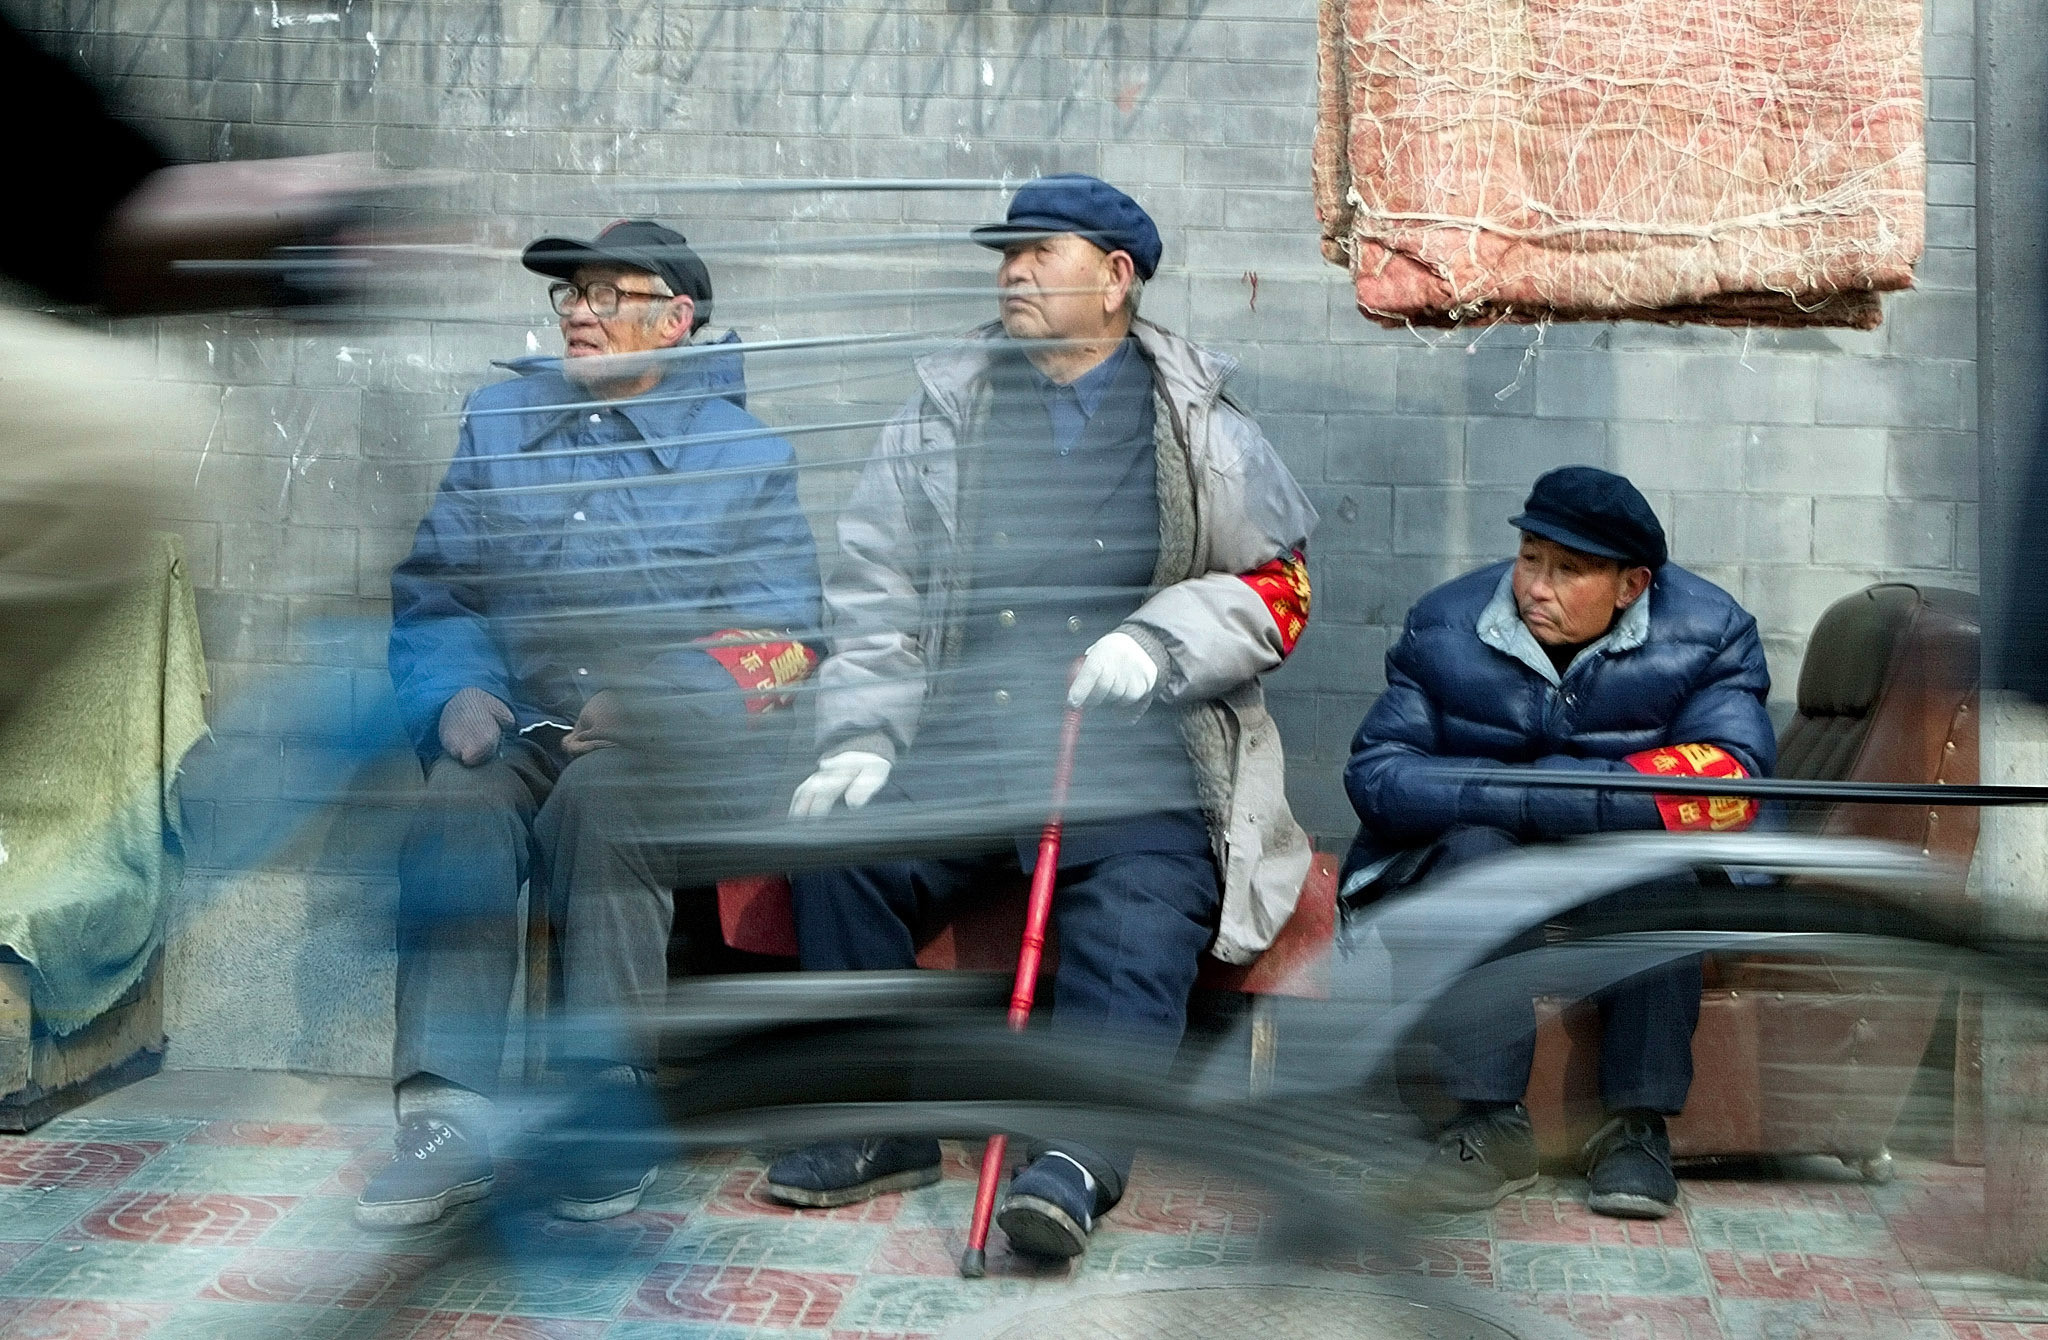 Chinese cyclists ride past three elderly men from neigbourhood watchcommittees in central Beijing February 27, 2003. Thousands of elderly localresidents from neigbourhood watch committees have stepped up their vigilanceas part of a citywide campaign to tighten security ahead of the annualsession of the National People's Congress, or parliament, due to convene onMarch 5. REUTERS/Guang Niu      Pictures of the Year 2003ASW/FA - RP3DRIPEVPAA